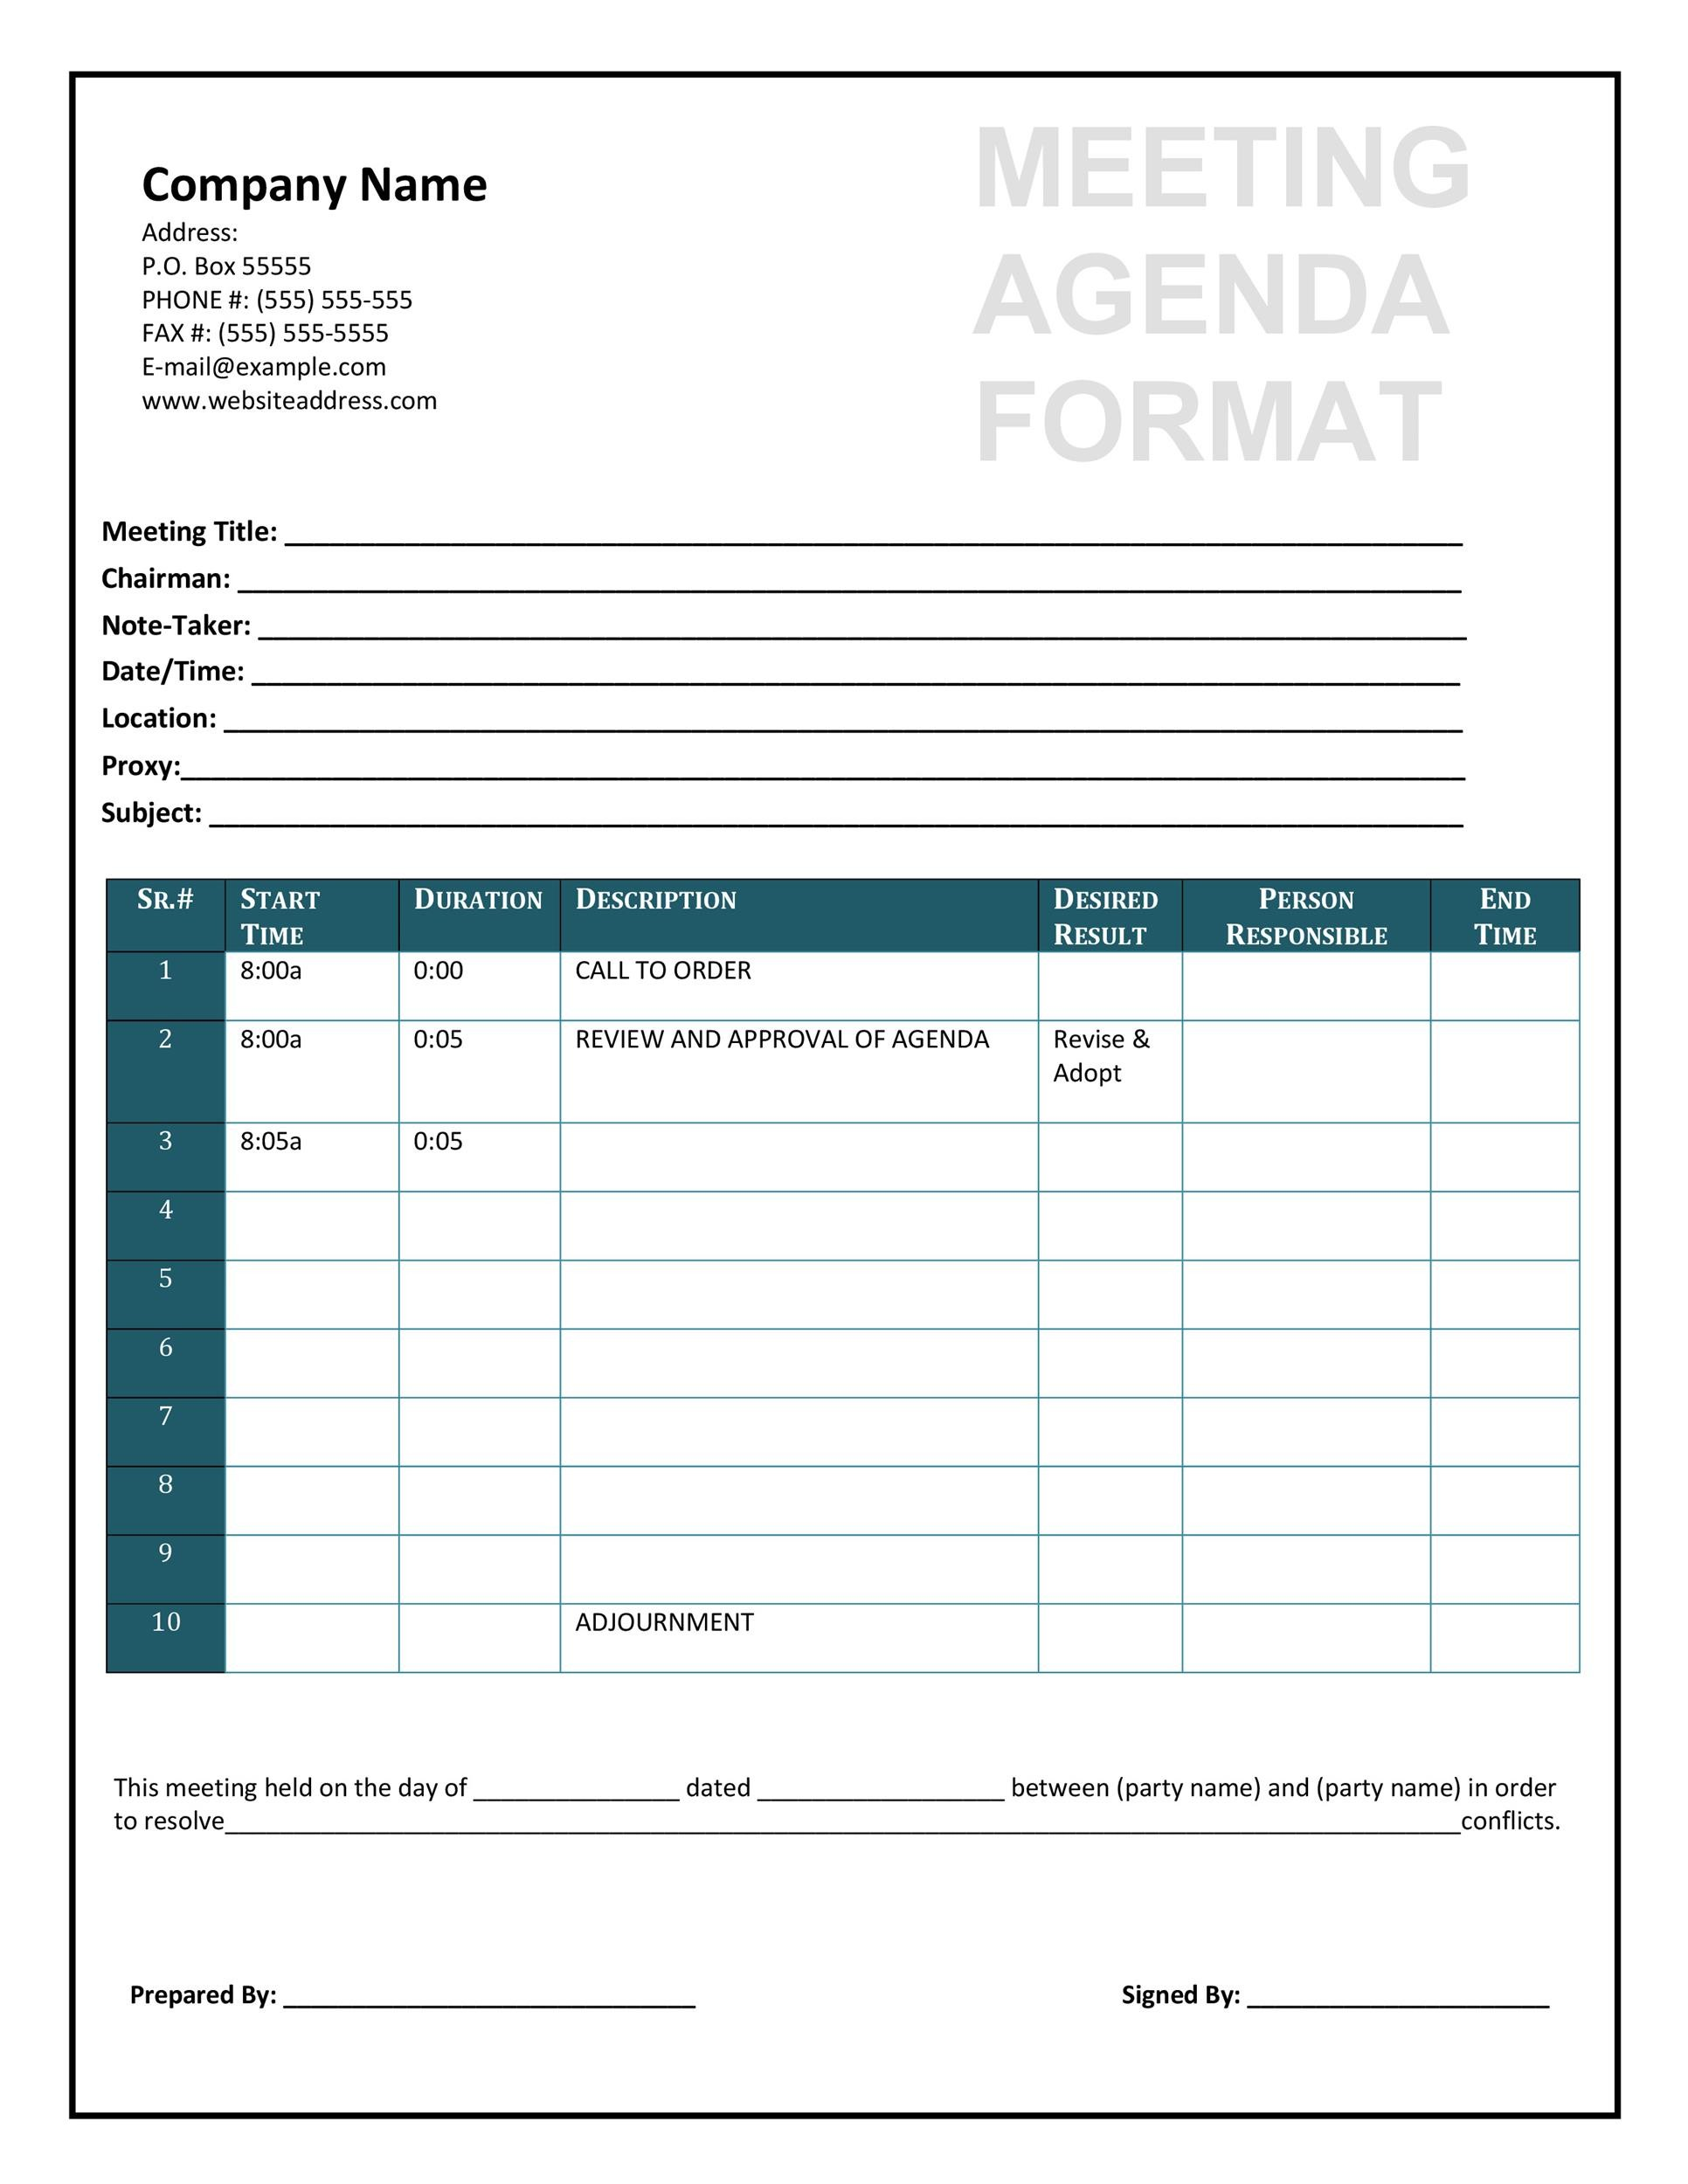 sample meeting agenda word